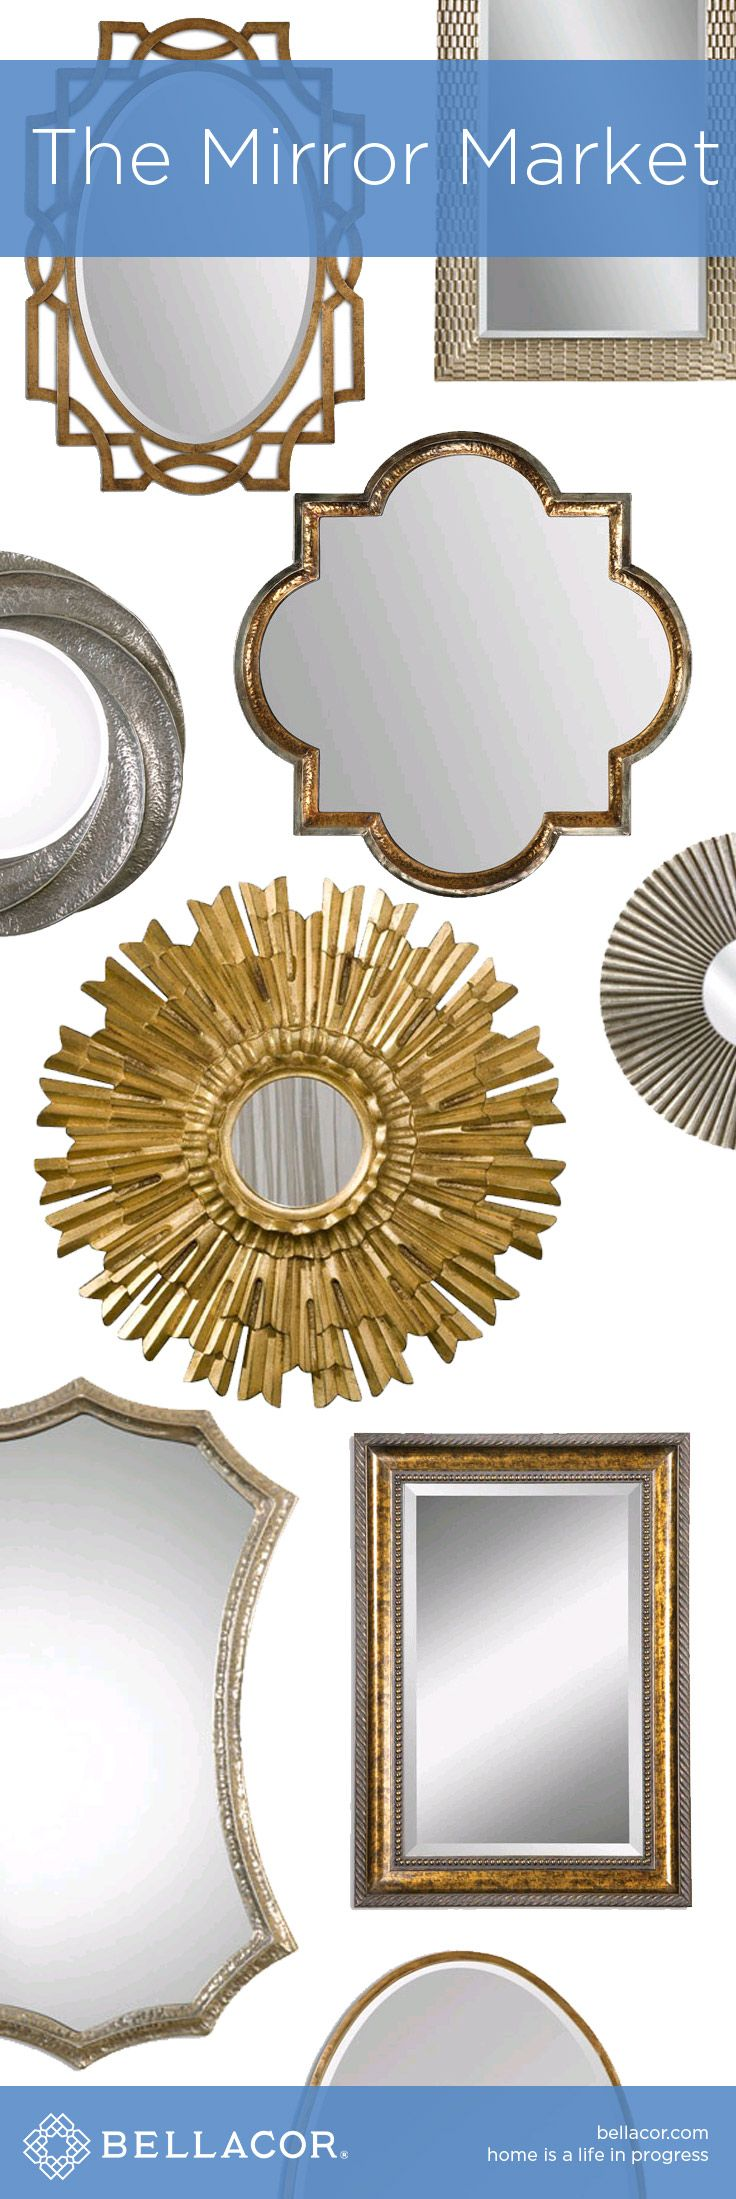 The Mirror Market - Mirrors of all Shapes and Sizes at http://www.bellacor.com/